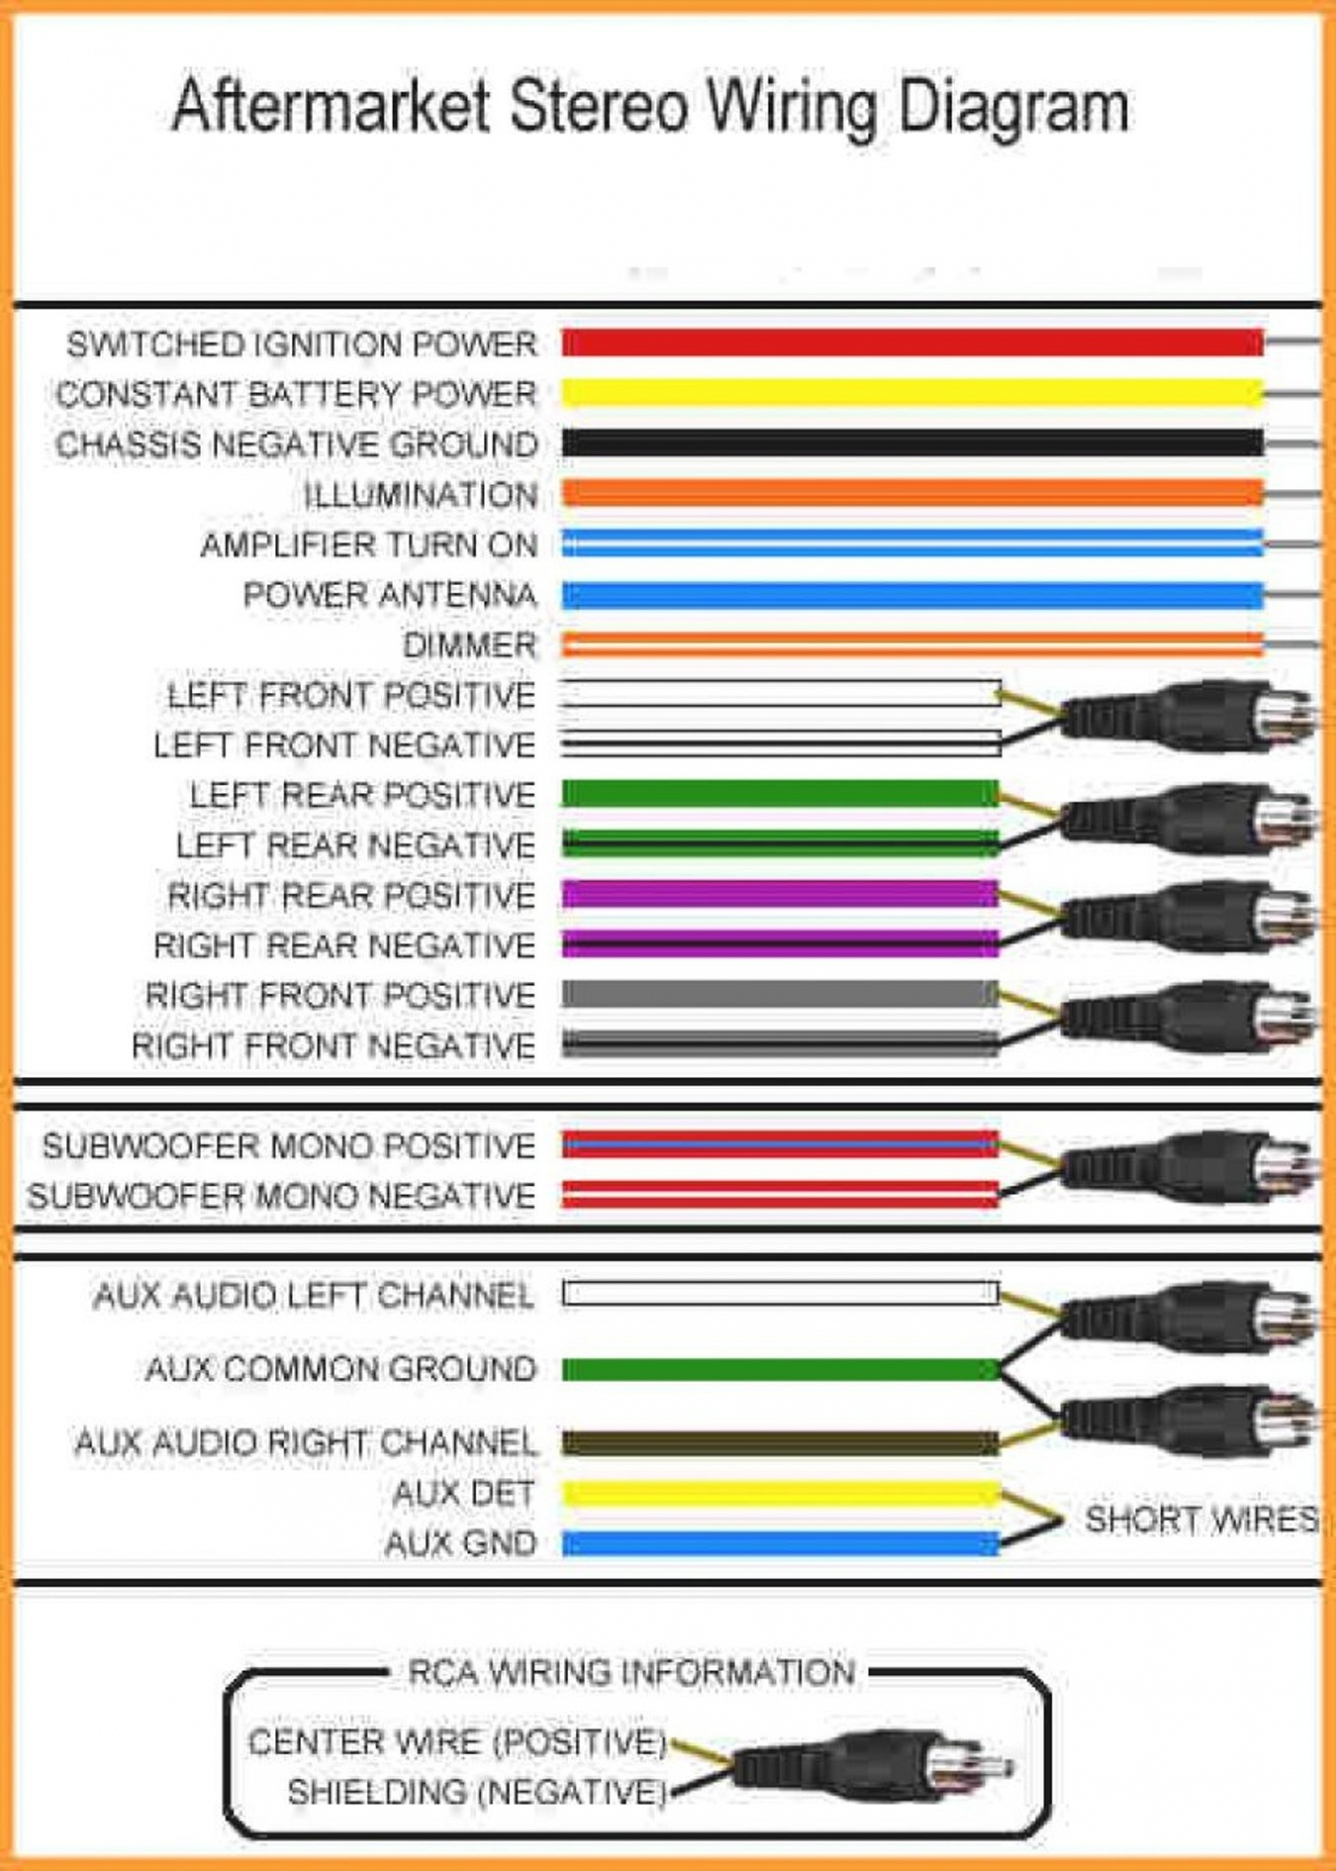 kenwood wiring colors diagram data wiring diagram Wiring-Diagram Kenwood Deck